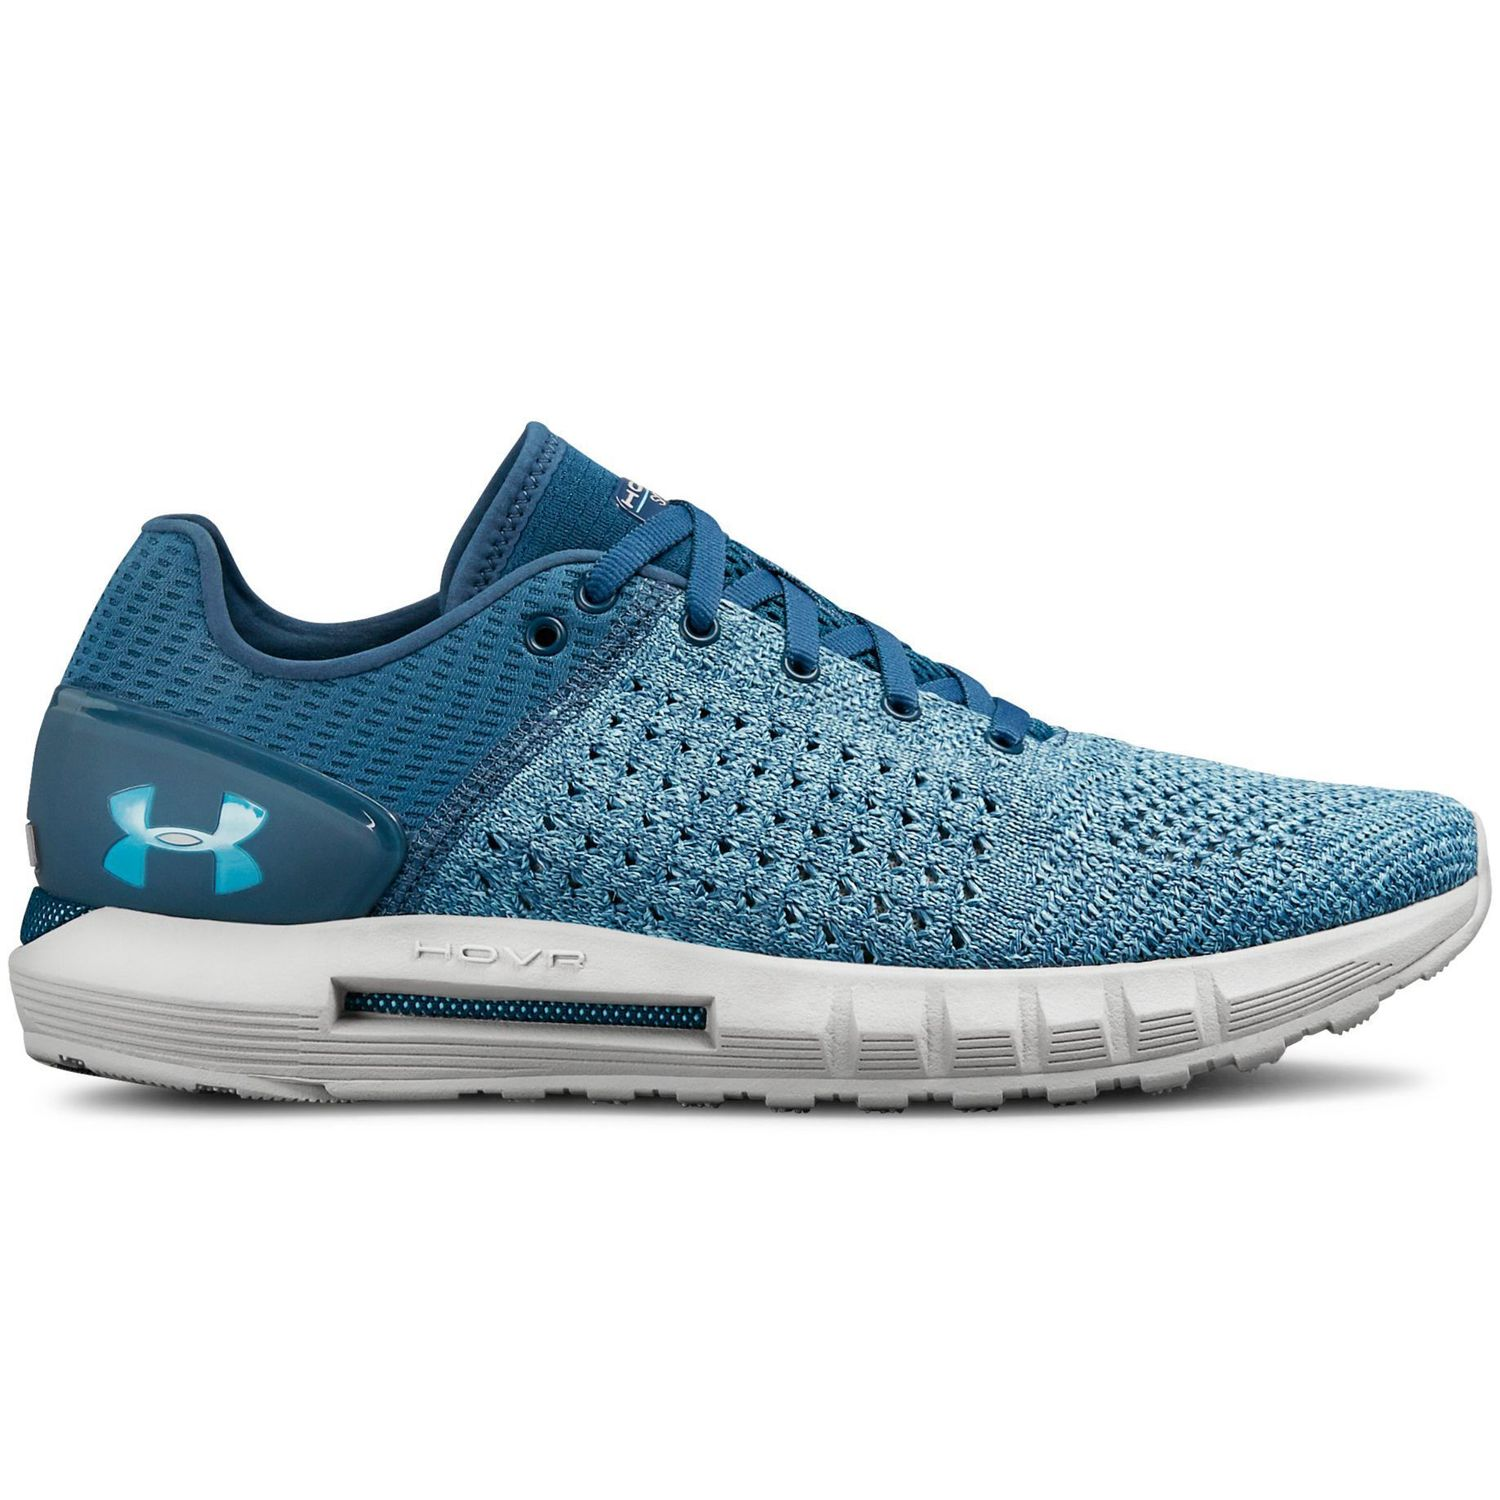 f720d0d3440 Zapatillas Under Armour Hovr Sonic De Mujer Running - sporting